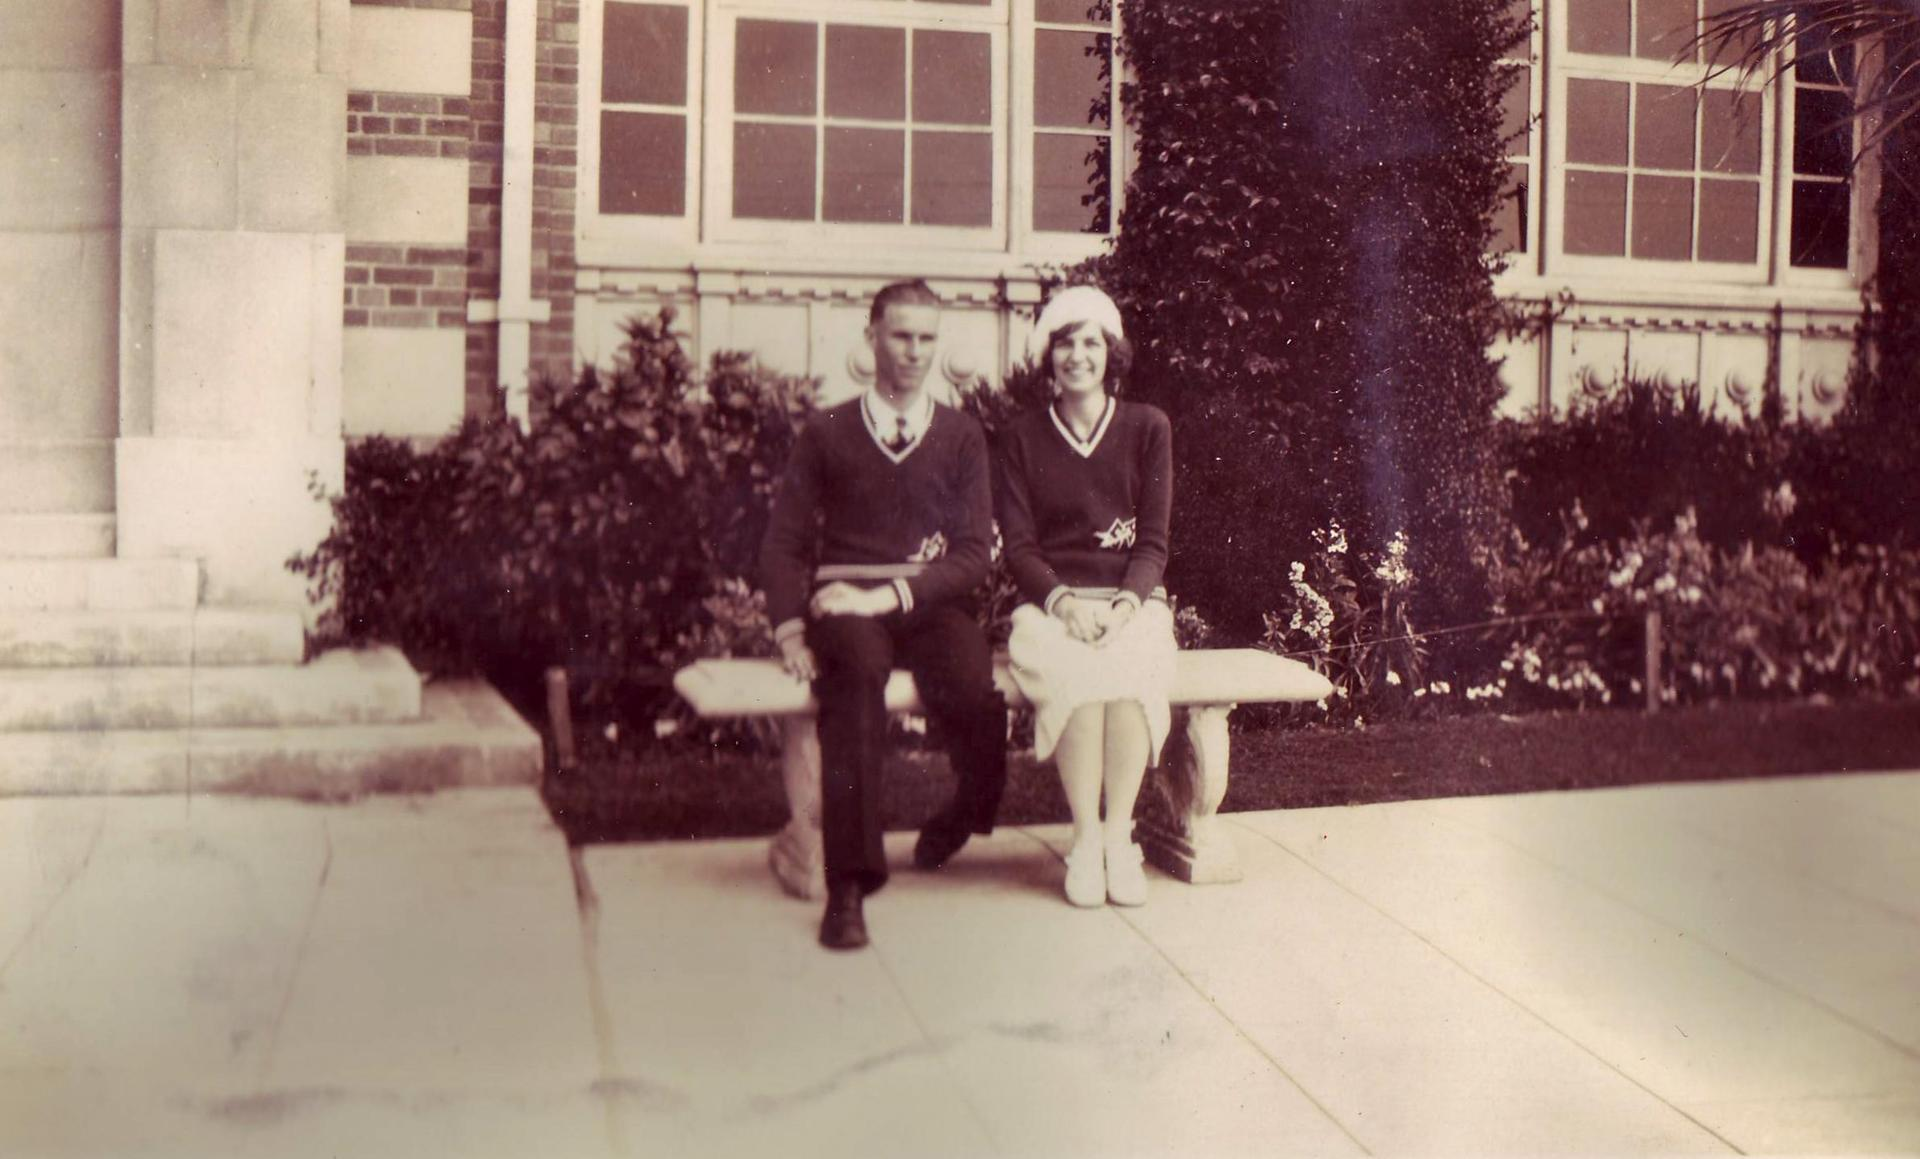 James and Margaret